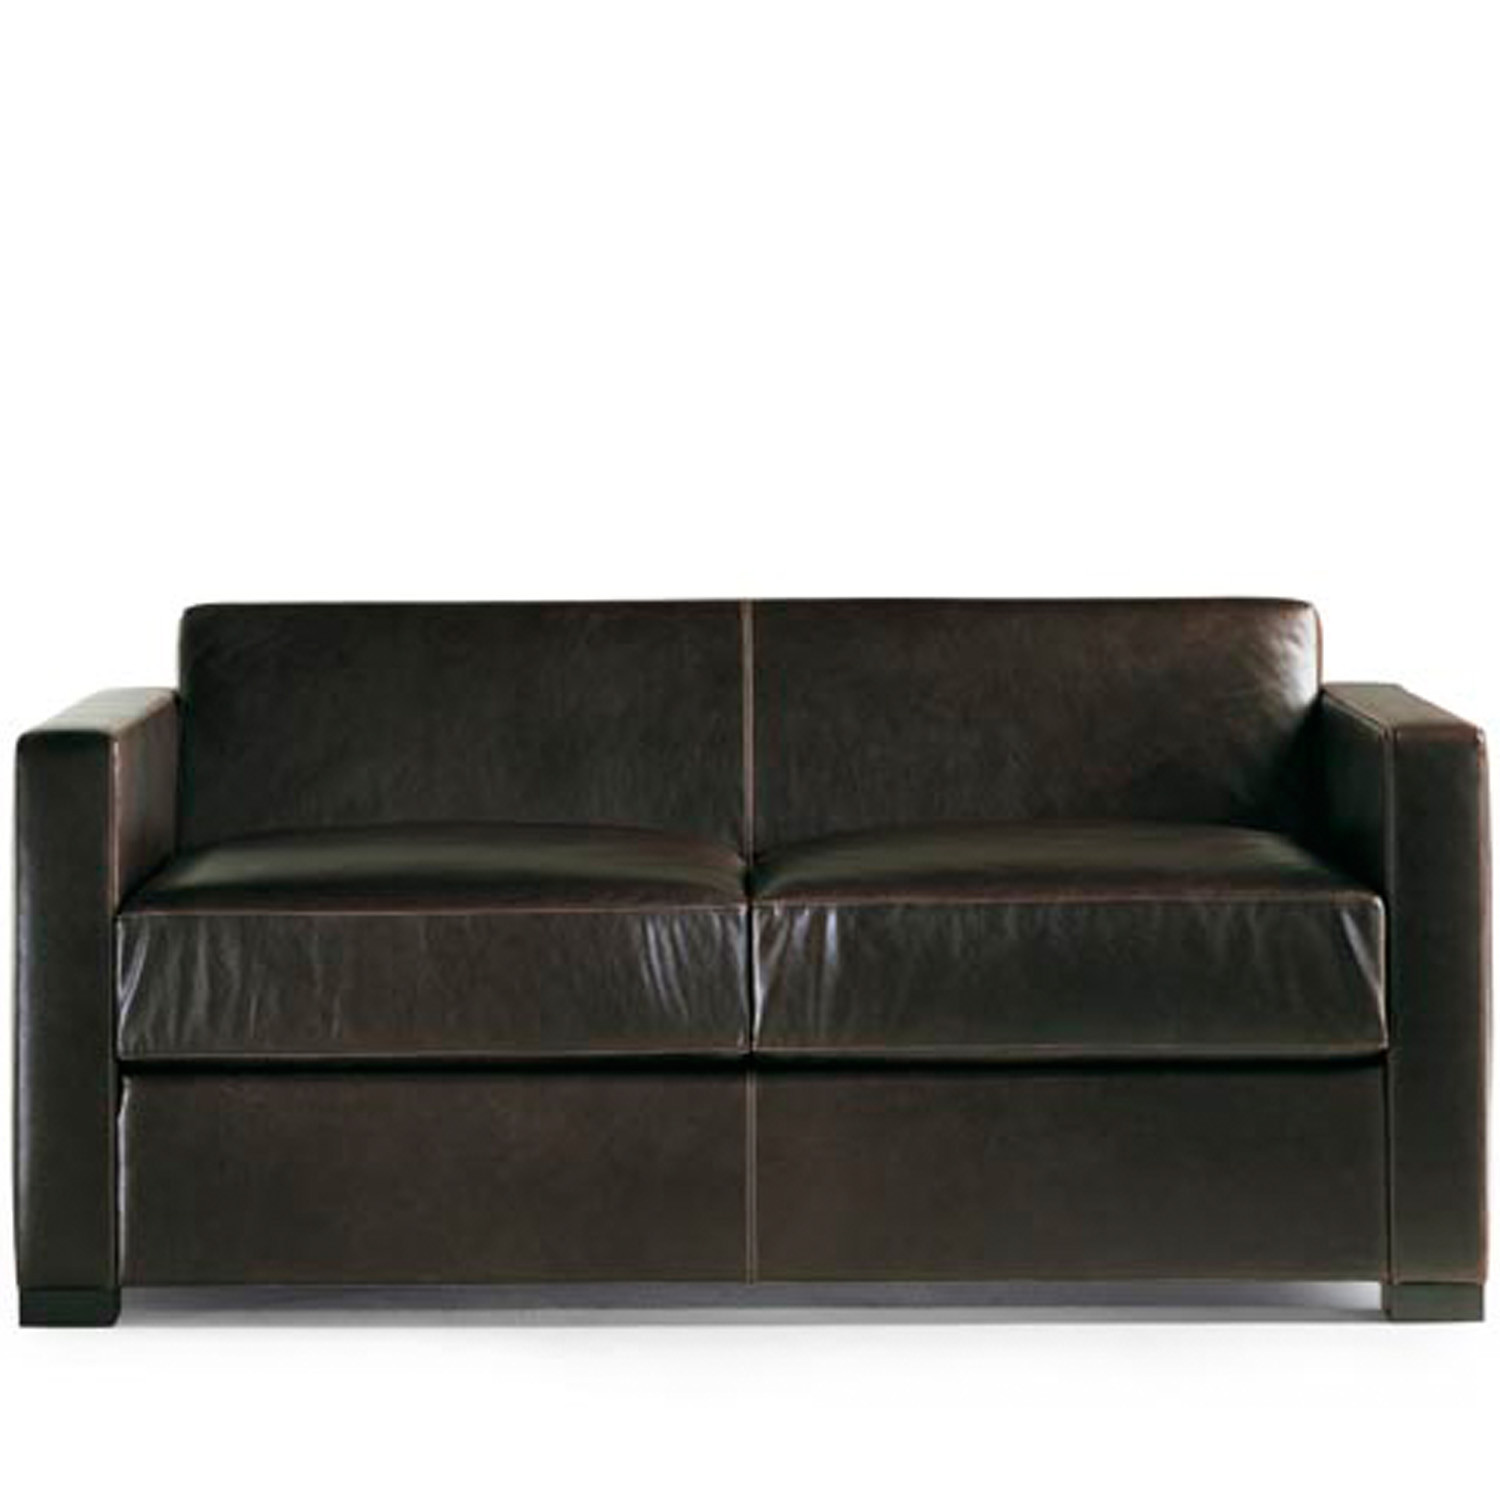 Linea A Sofa 2 Seater from Poltrona Frau